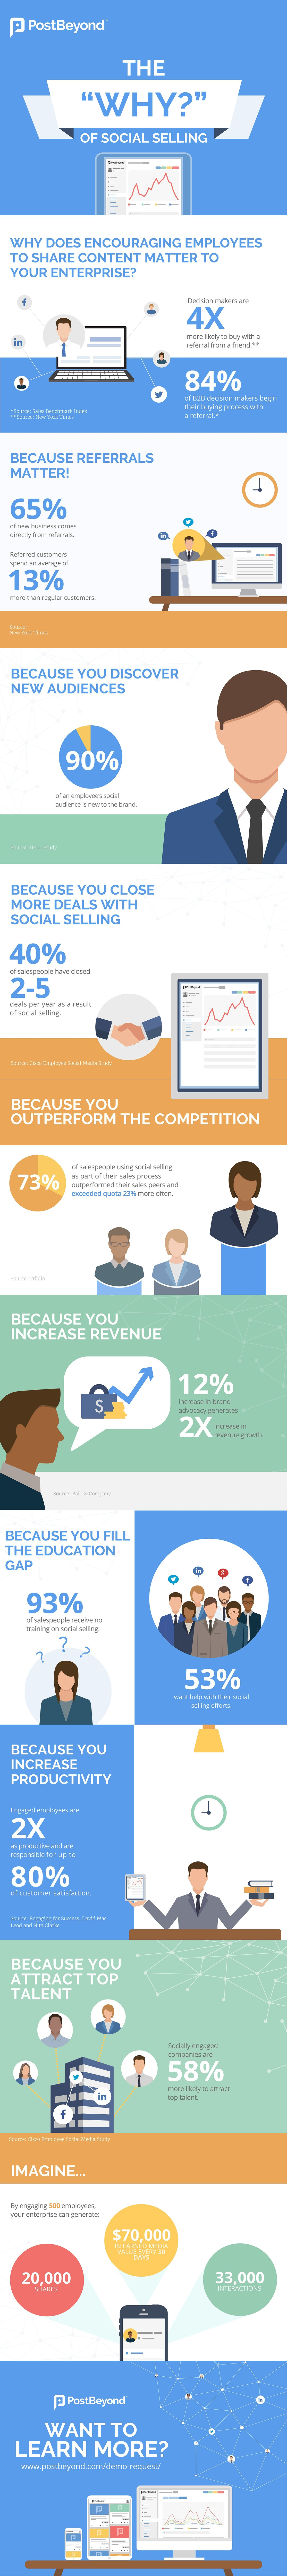 Why-Your-Sales-Team-Should-Use-Social-Selling-PostBeyond.jpg